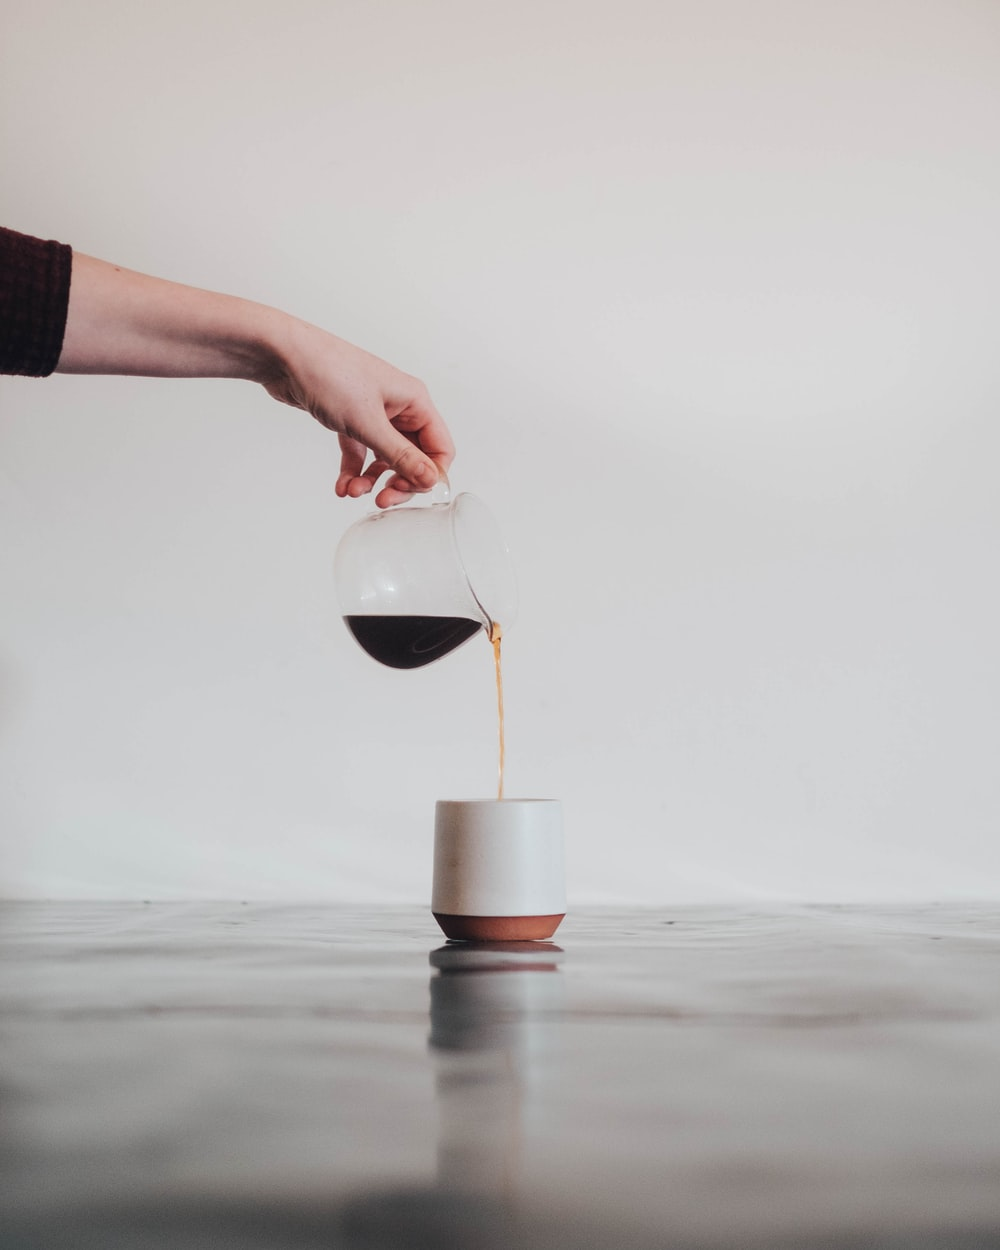 person pouring coffee in white mug